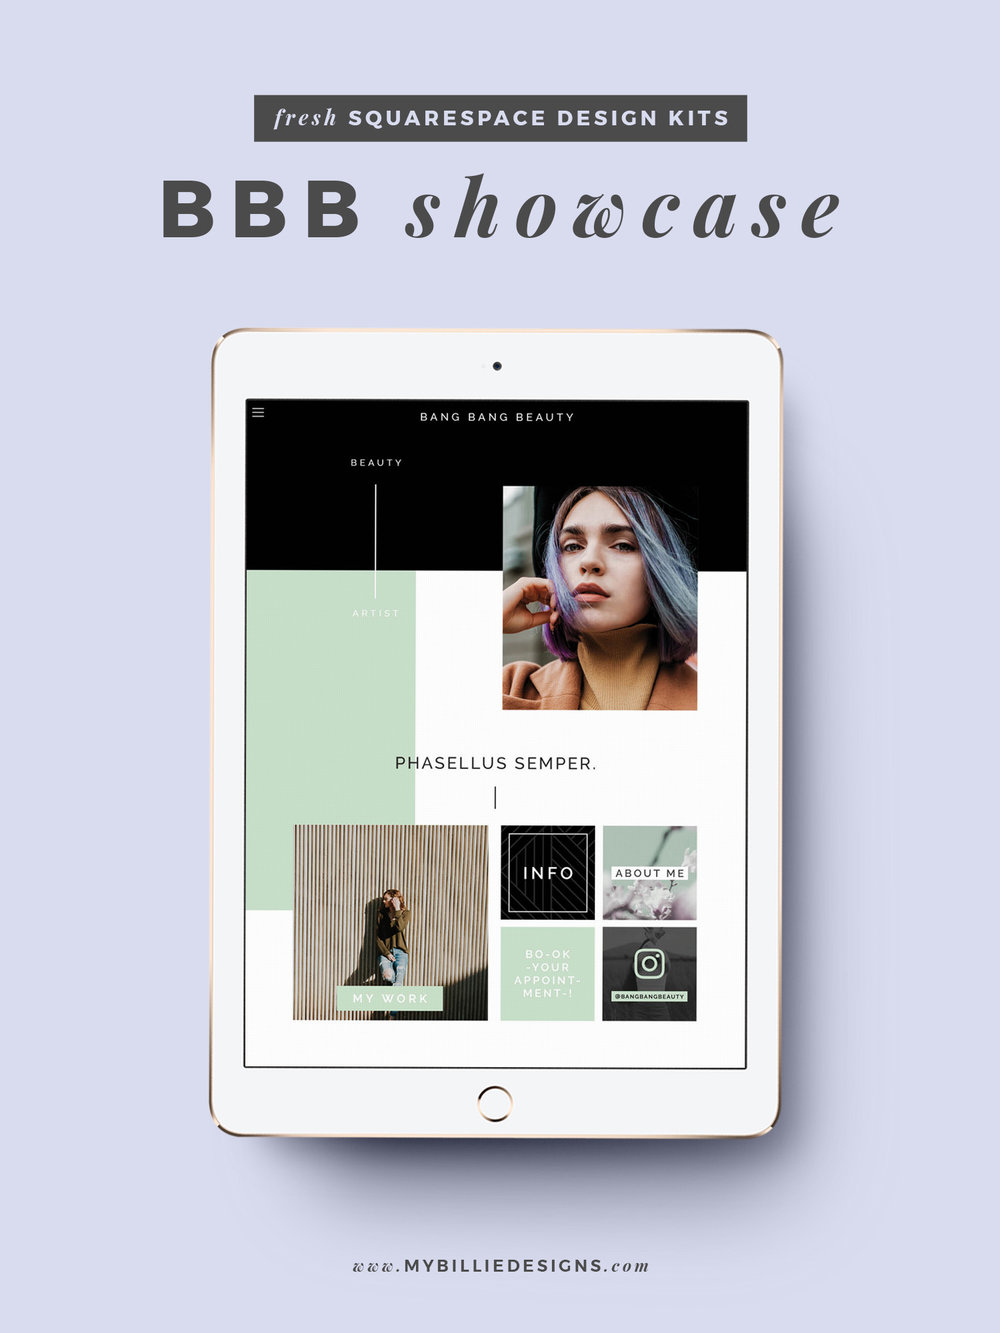 MBD Squarespace Design Kits | BBB Design + Customization Ideas